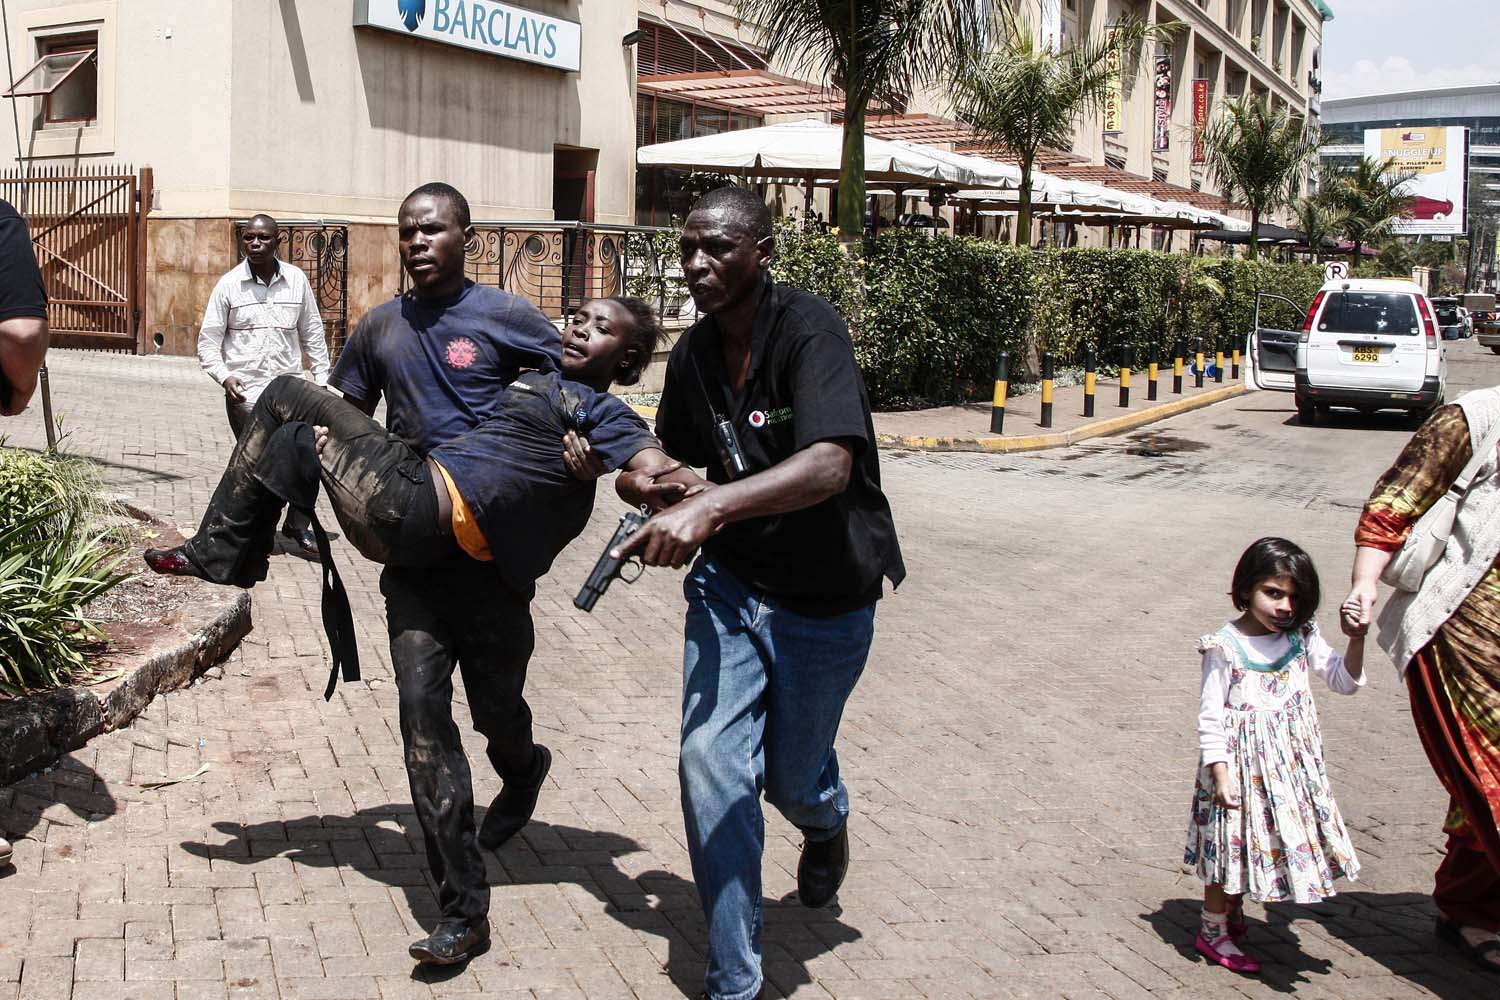 Sept. 21, 2013. Rescuers carry an injured woman away from the Westgate Shopping Center after a shootout in Nairobi, Kenya.